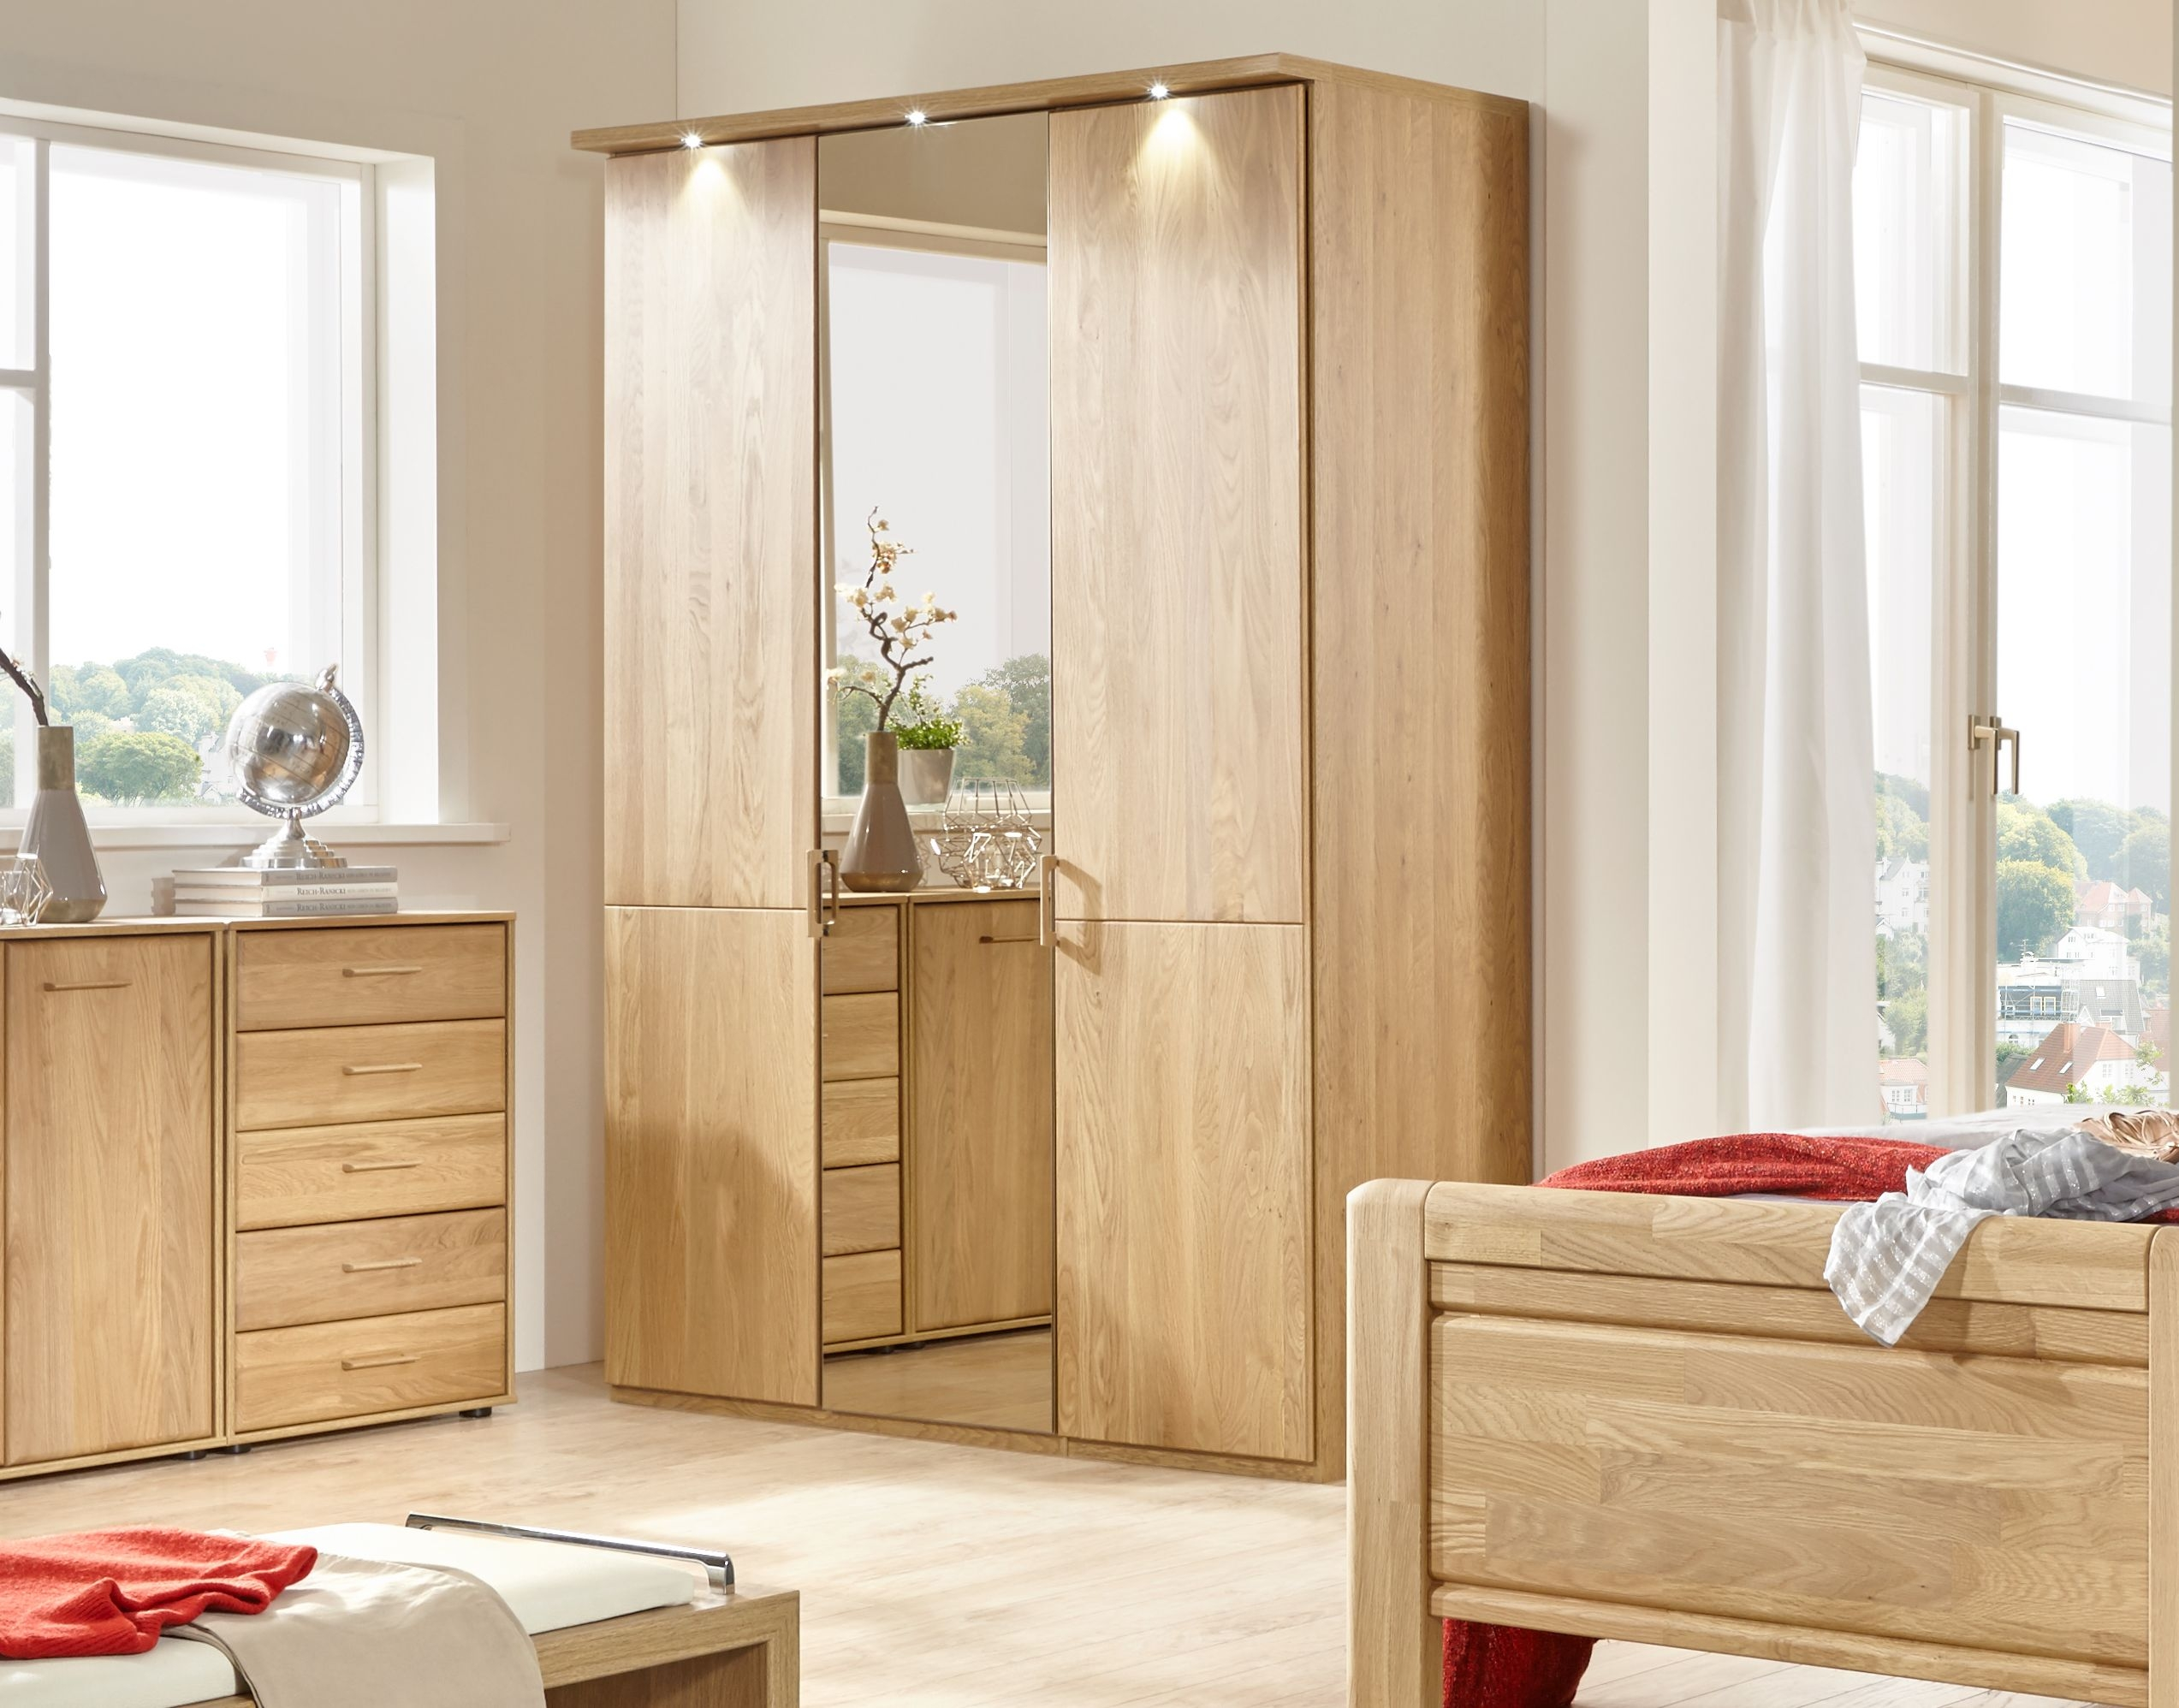 Wiemann Lido 3 Door 1 Mirror Wardrobe in Oak - W 150cm